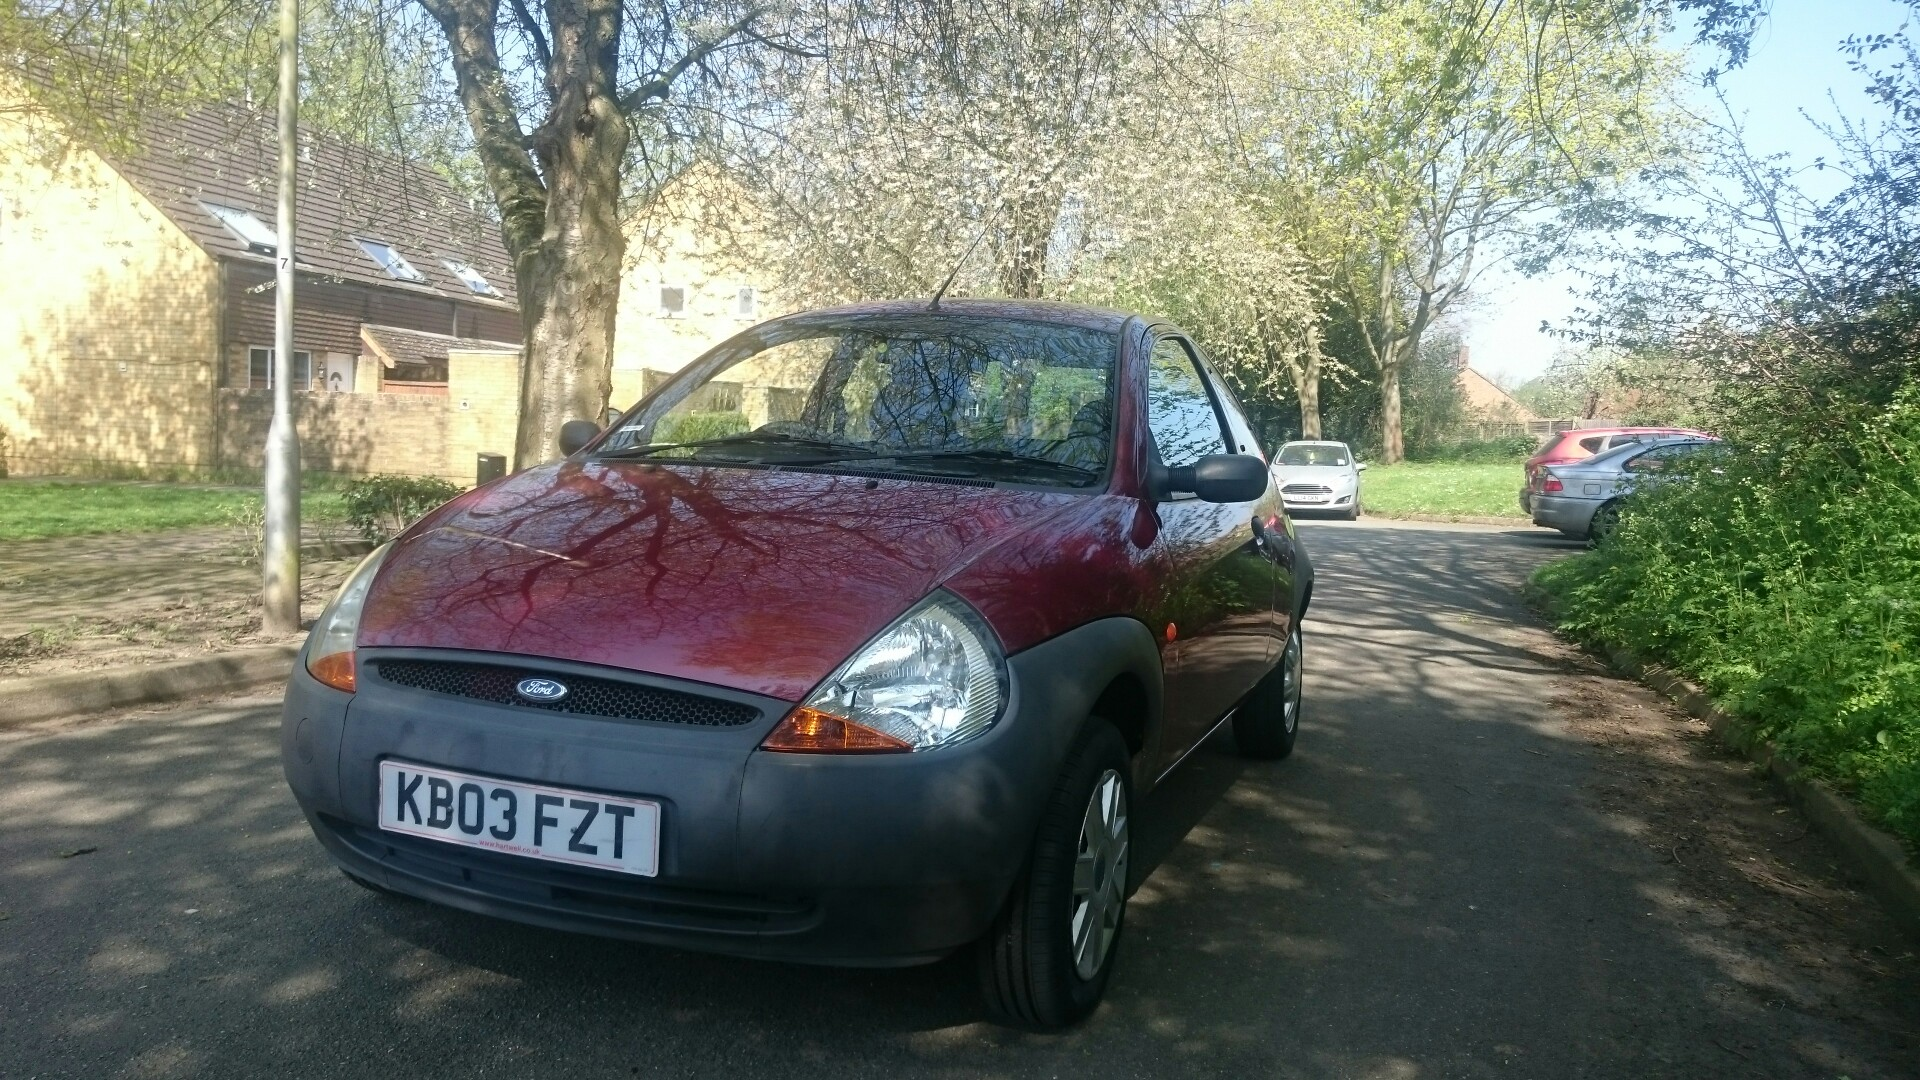 Brilliant Little Ford Ka   Only Done  Miles Drives Like New And Is In Good Condition Cheap Car Perfect For Run Around Or Young Driver